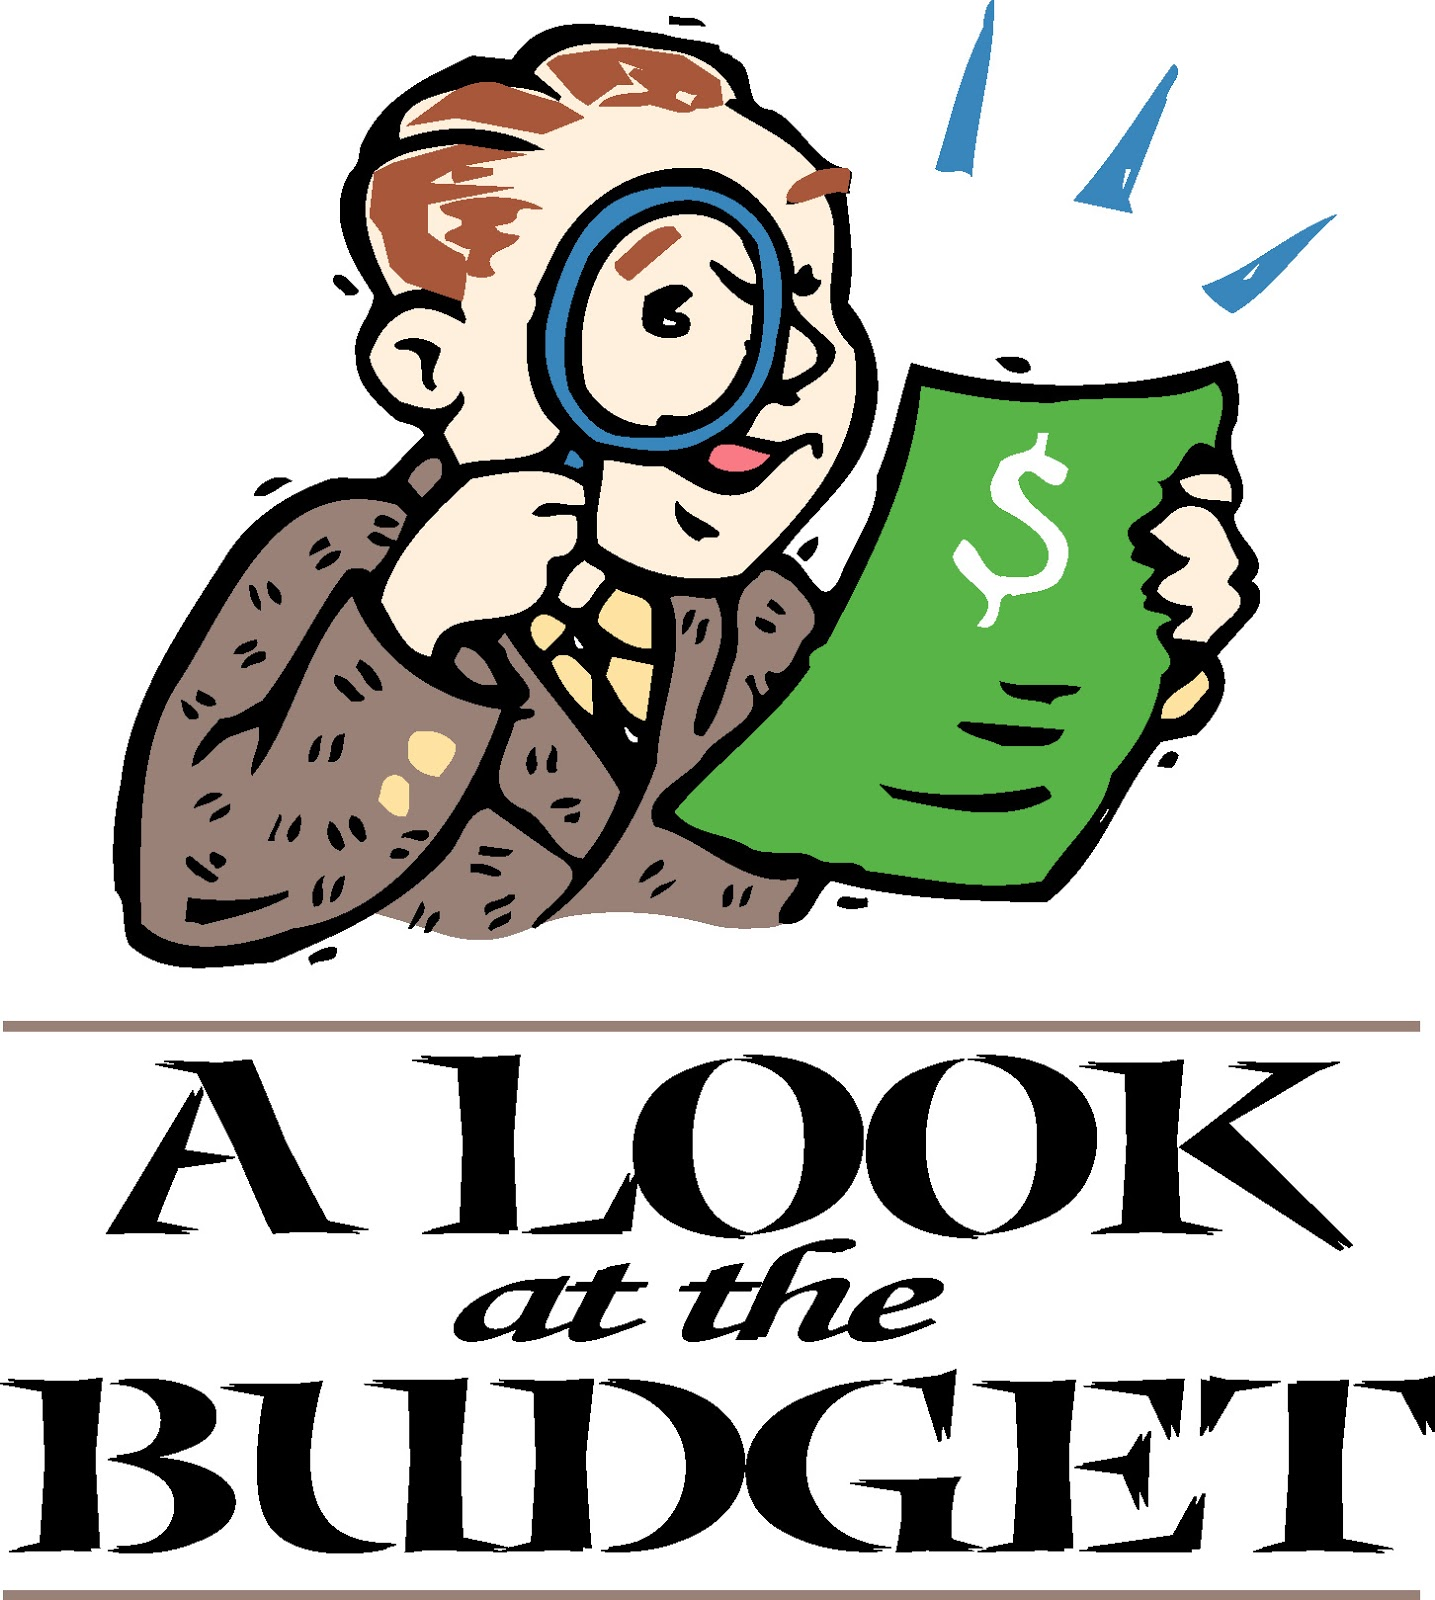 Life begins at retirement. Budget clipart cute